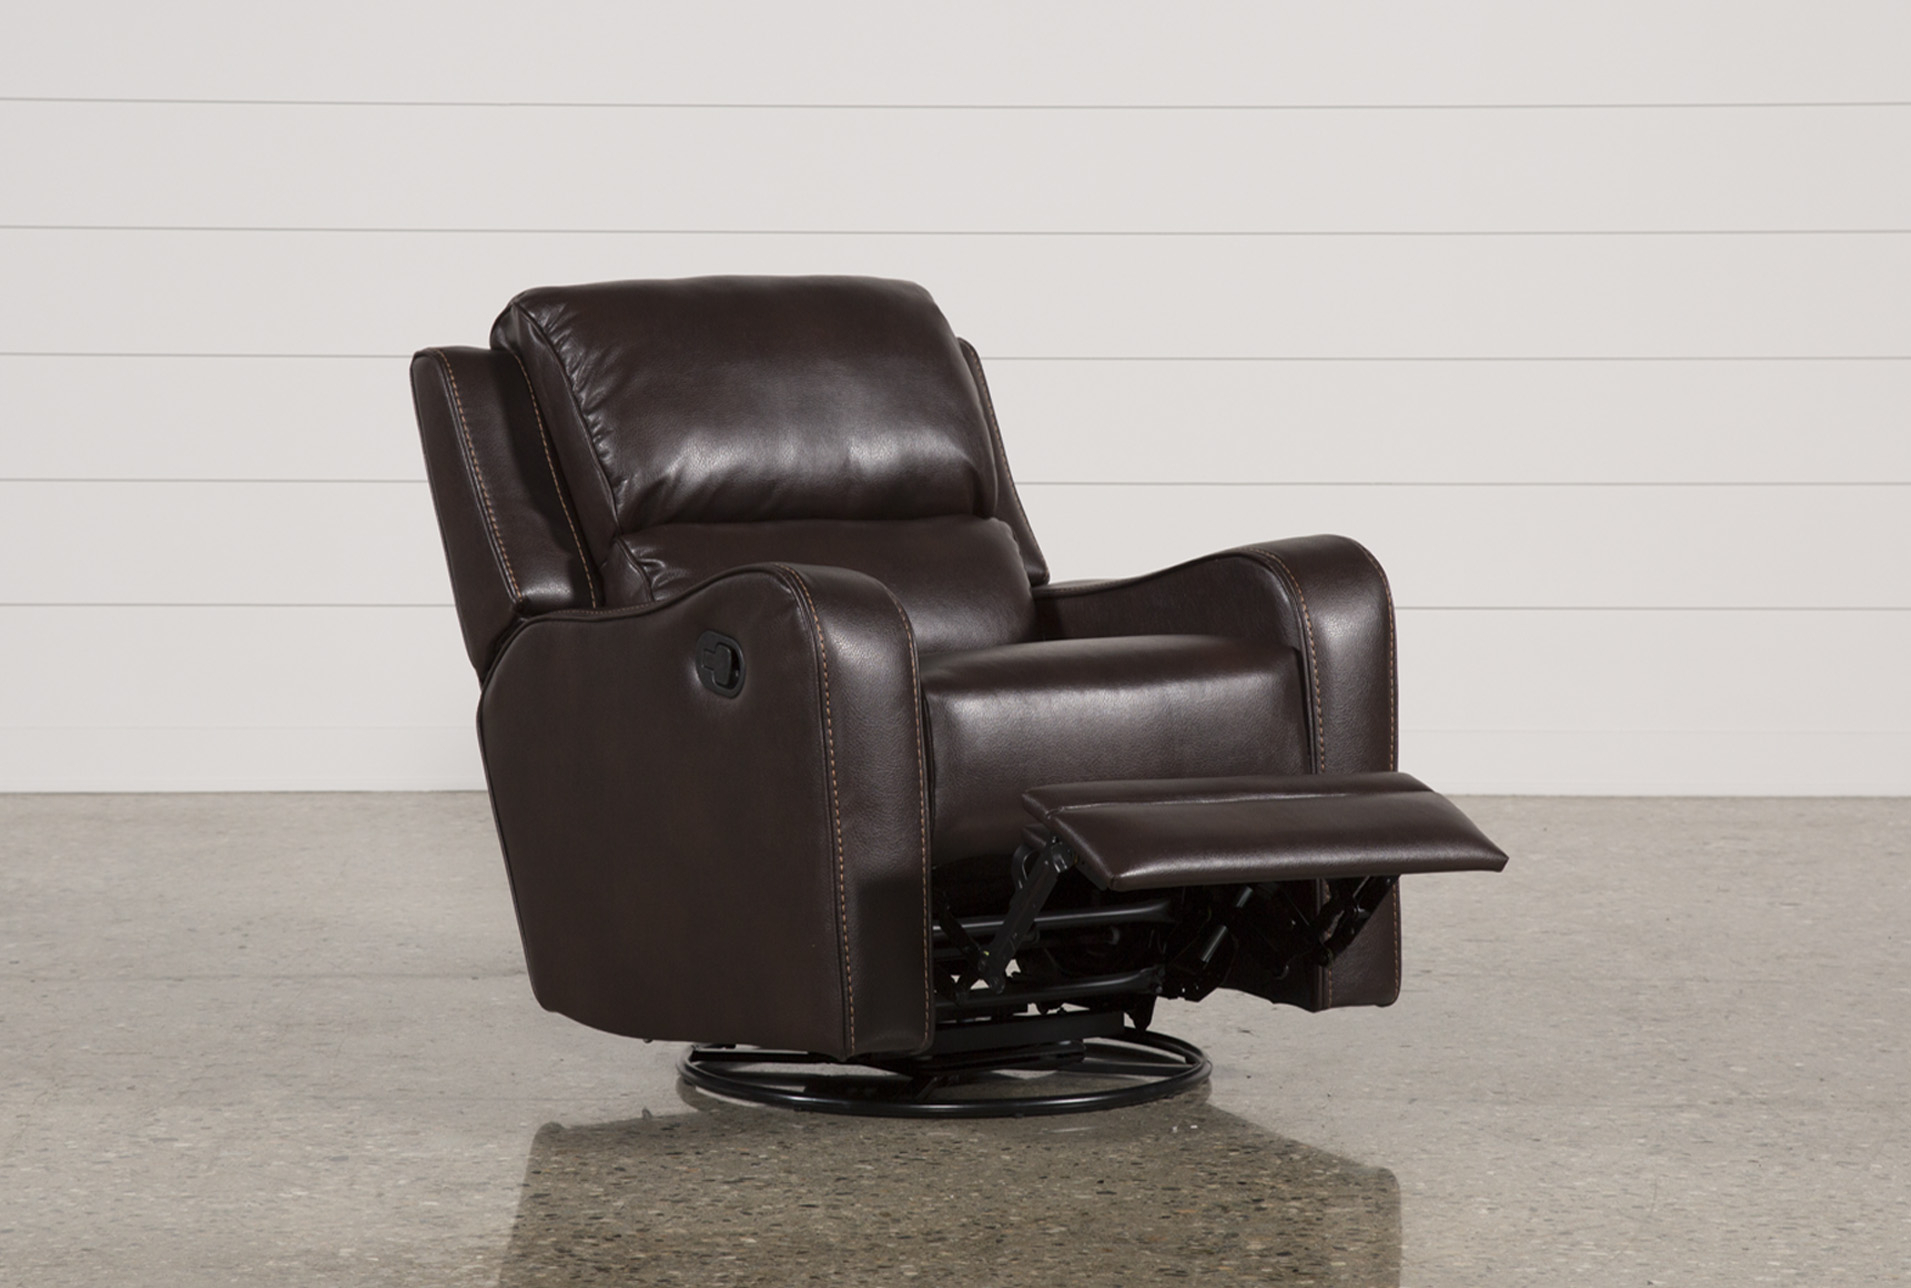 Scorpio Brown Swivel Glider Recliner In 2018 | Products | Pinterest In Kawai Leather Swivel Chairs (View 7 of 20)